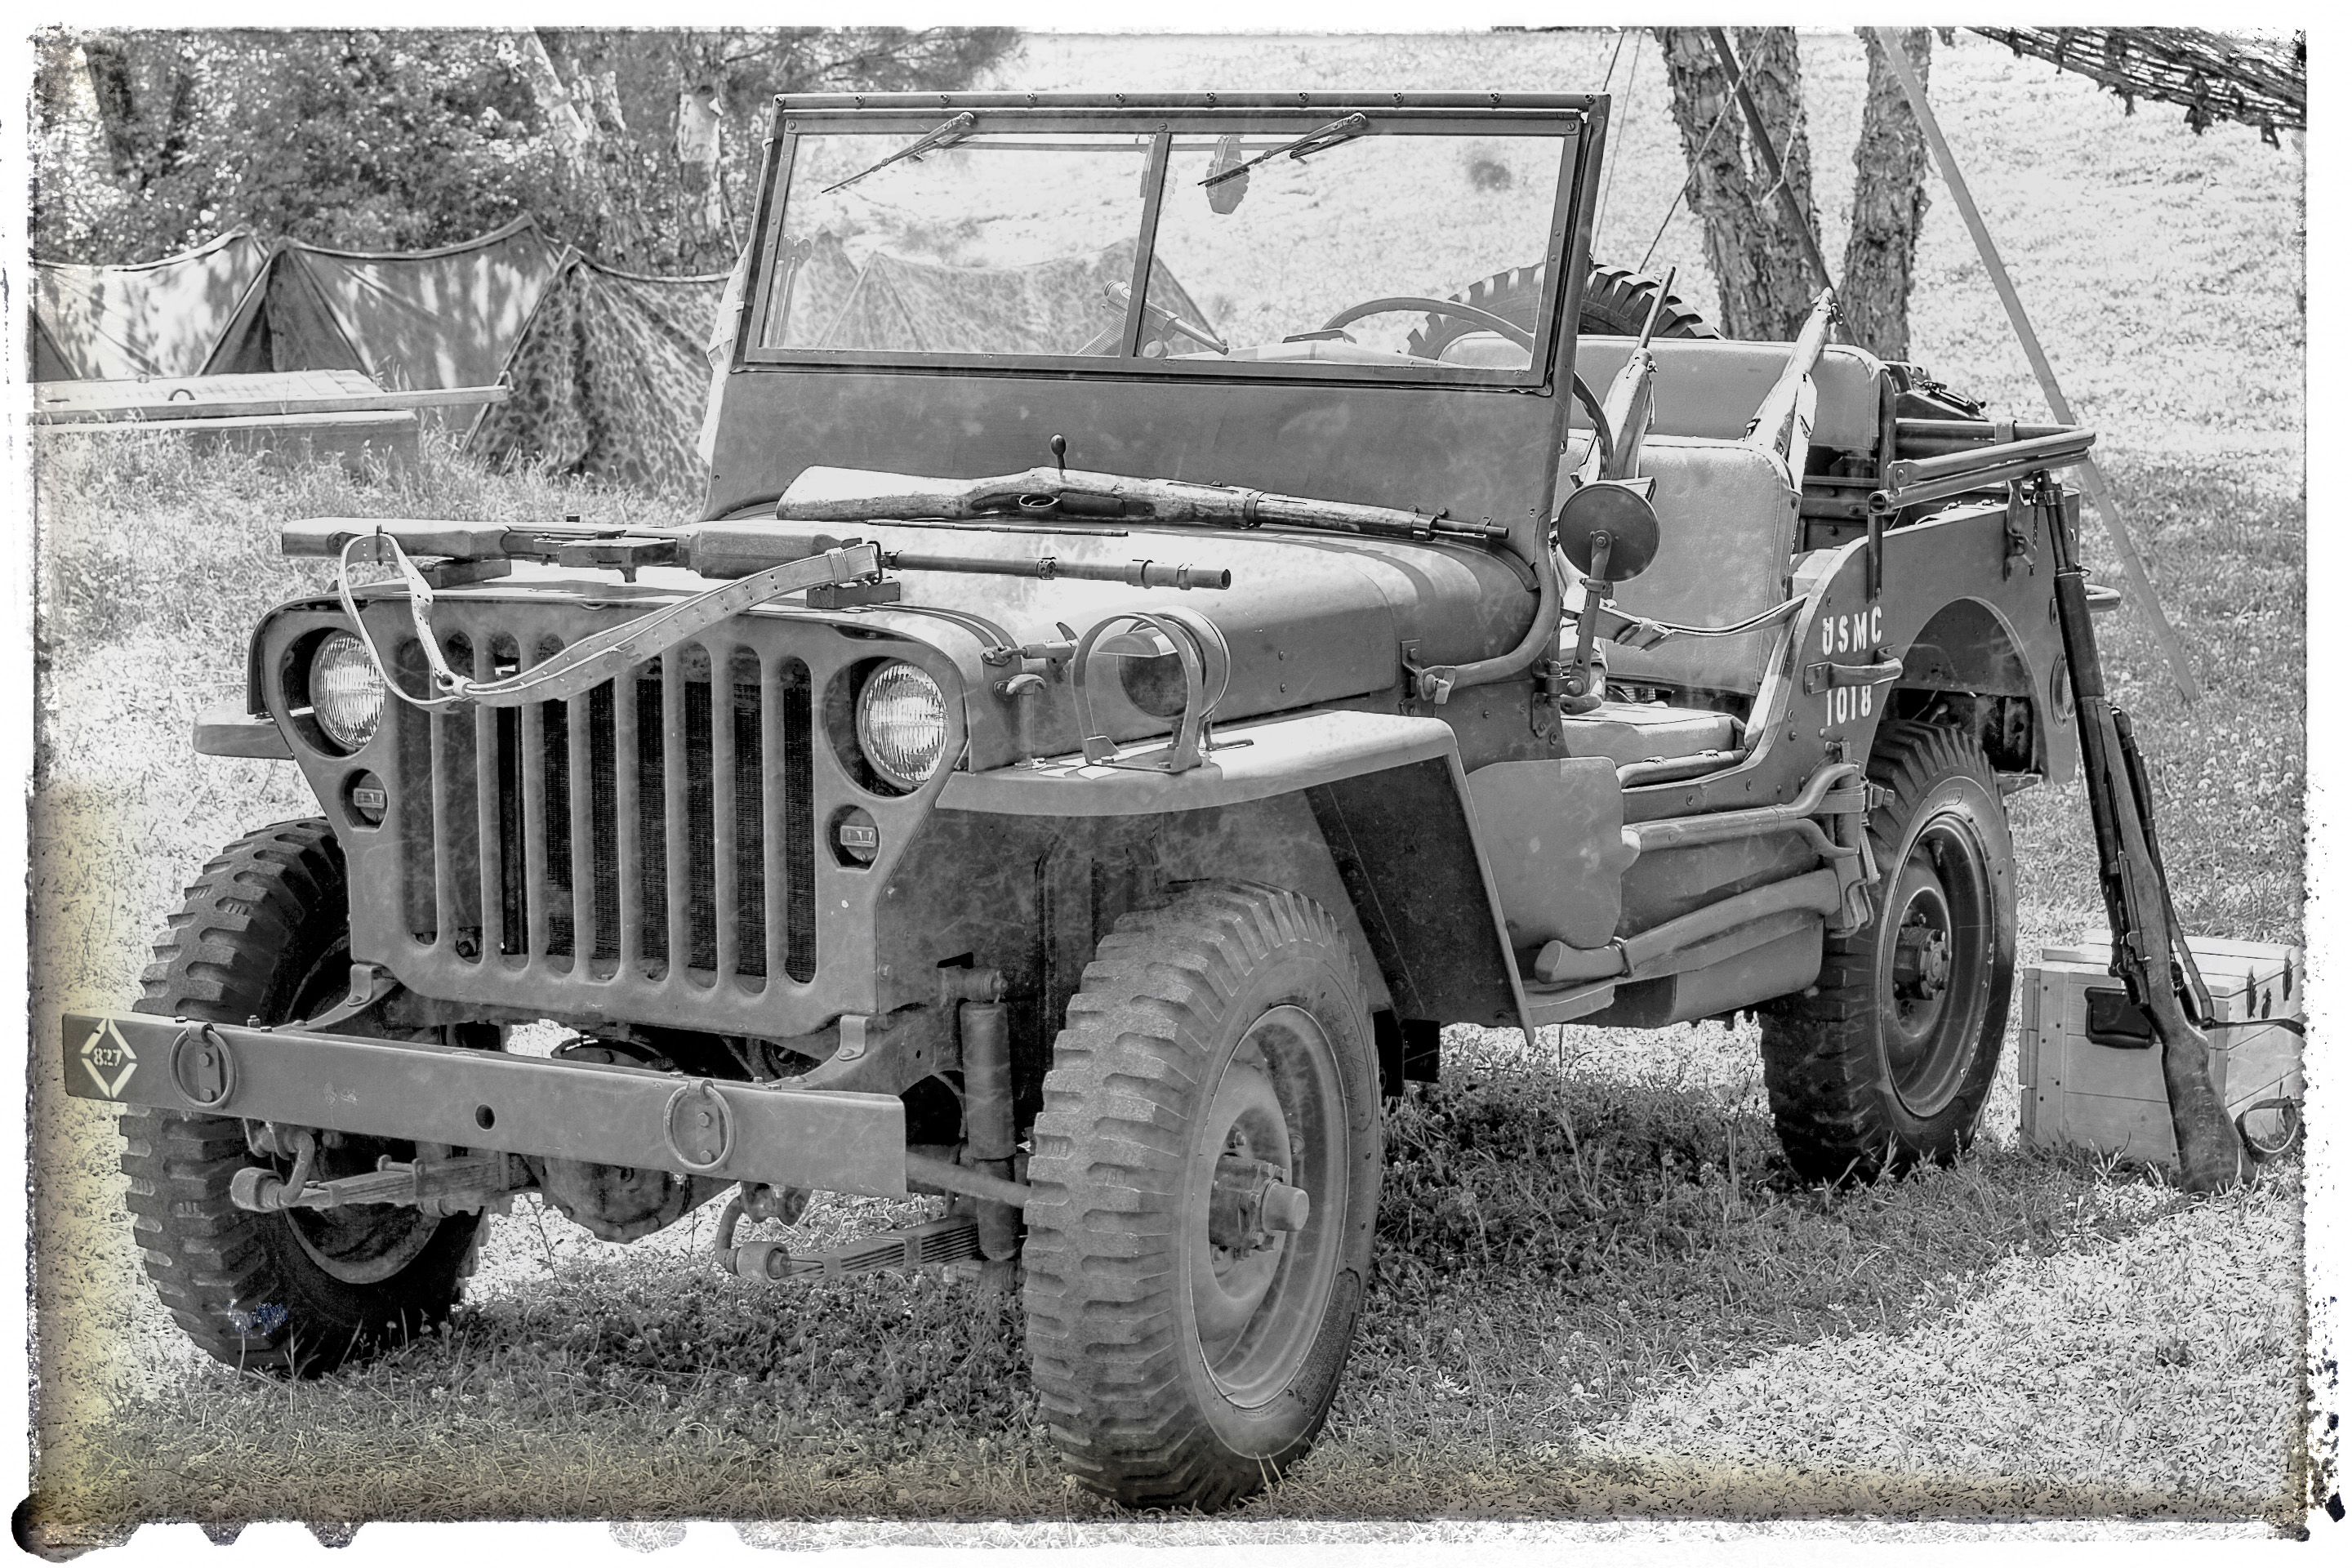 WWII jeep camp aged bw 042118